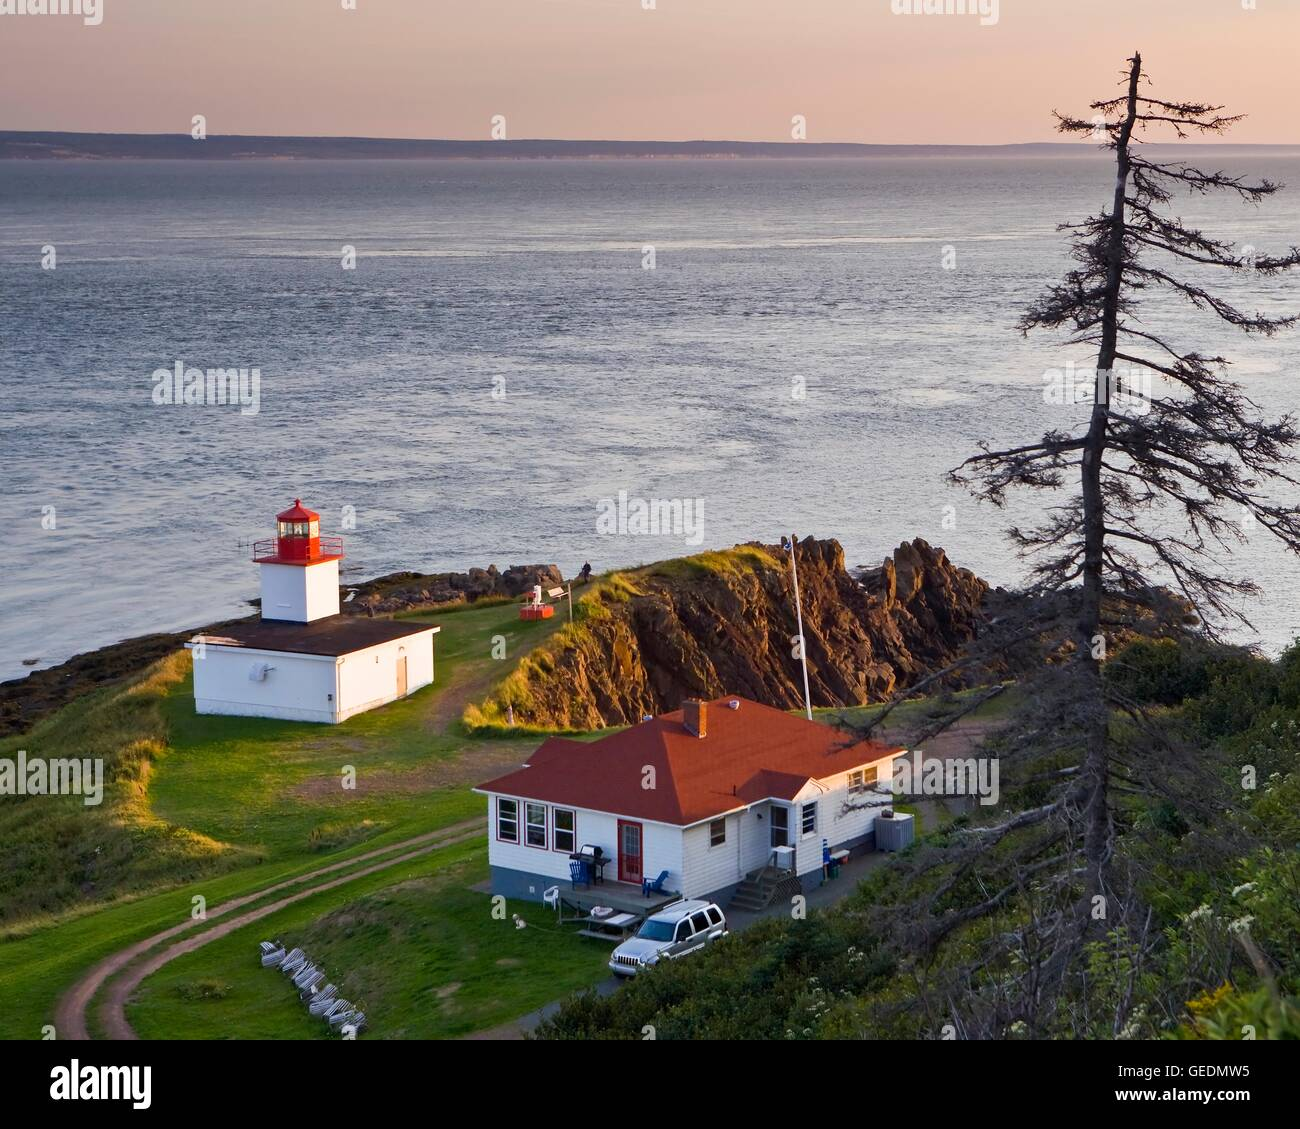 Travel Geography: Chignecto Bay Stock Photos & Chignecto Bay Stock Images